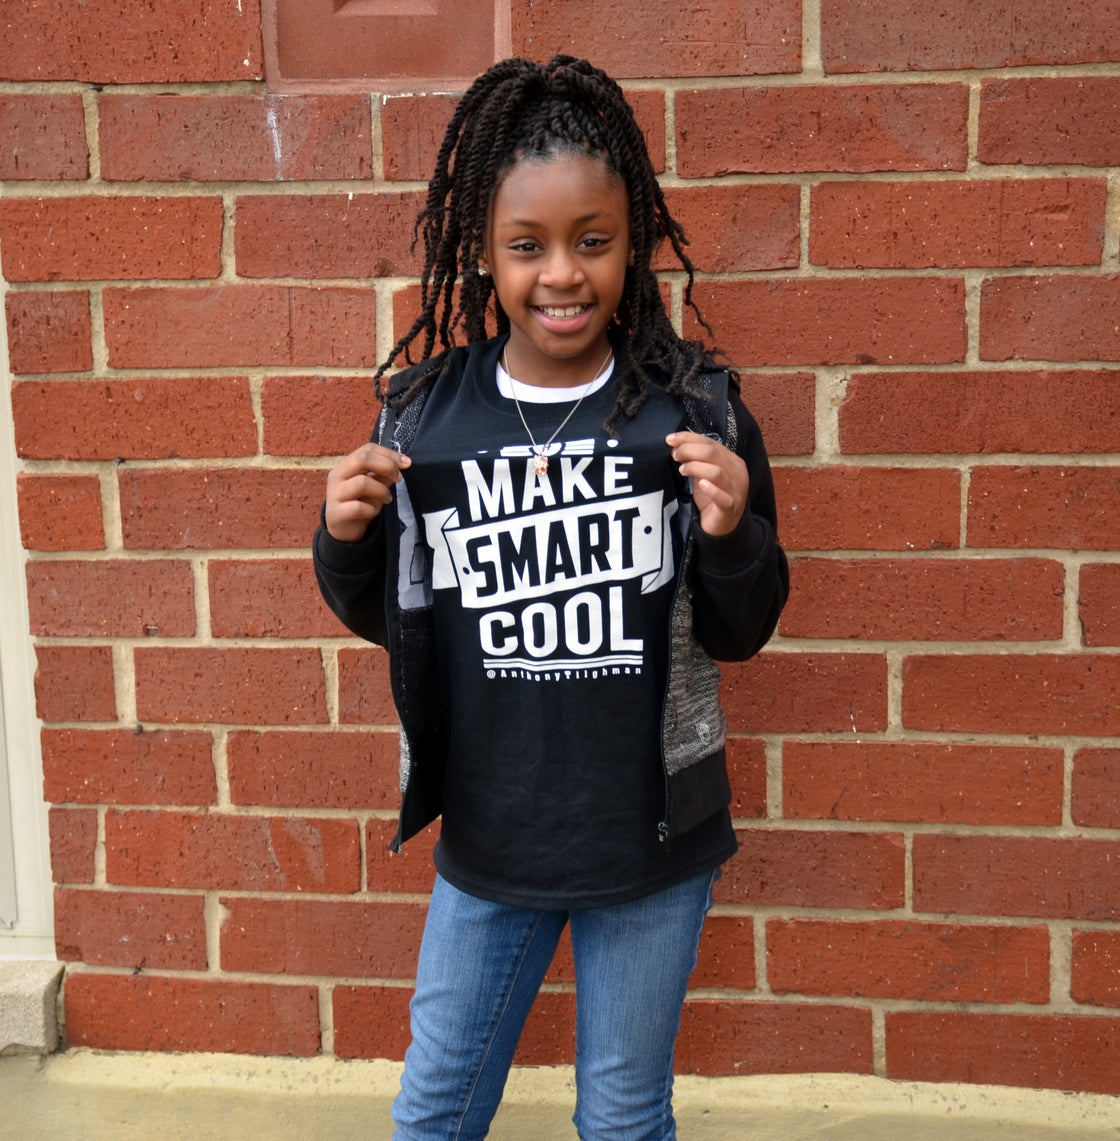 Image of MakeSmartCool Kids Youth Tee